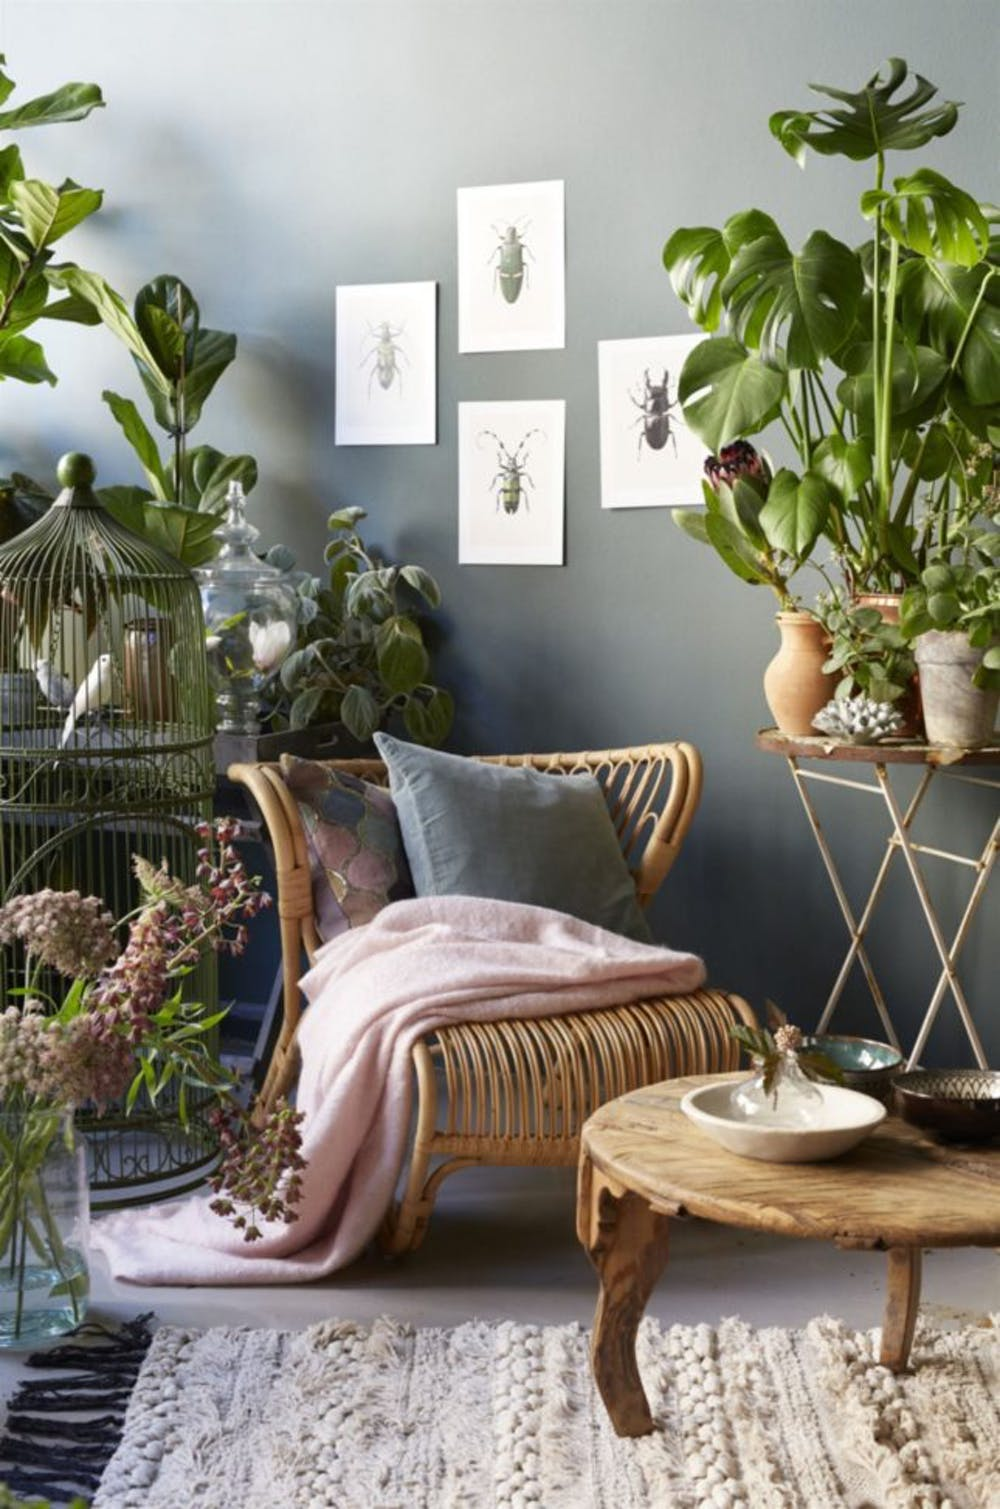 Urban Jungle Decorating Kitchen: Urban-jungle-decor-1